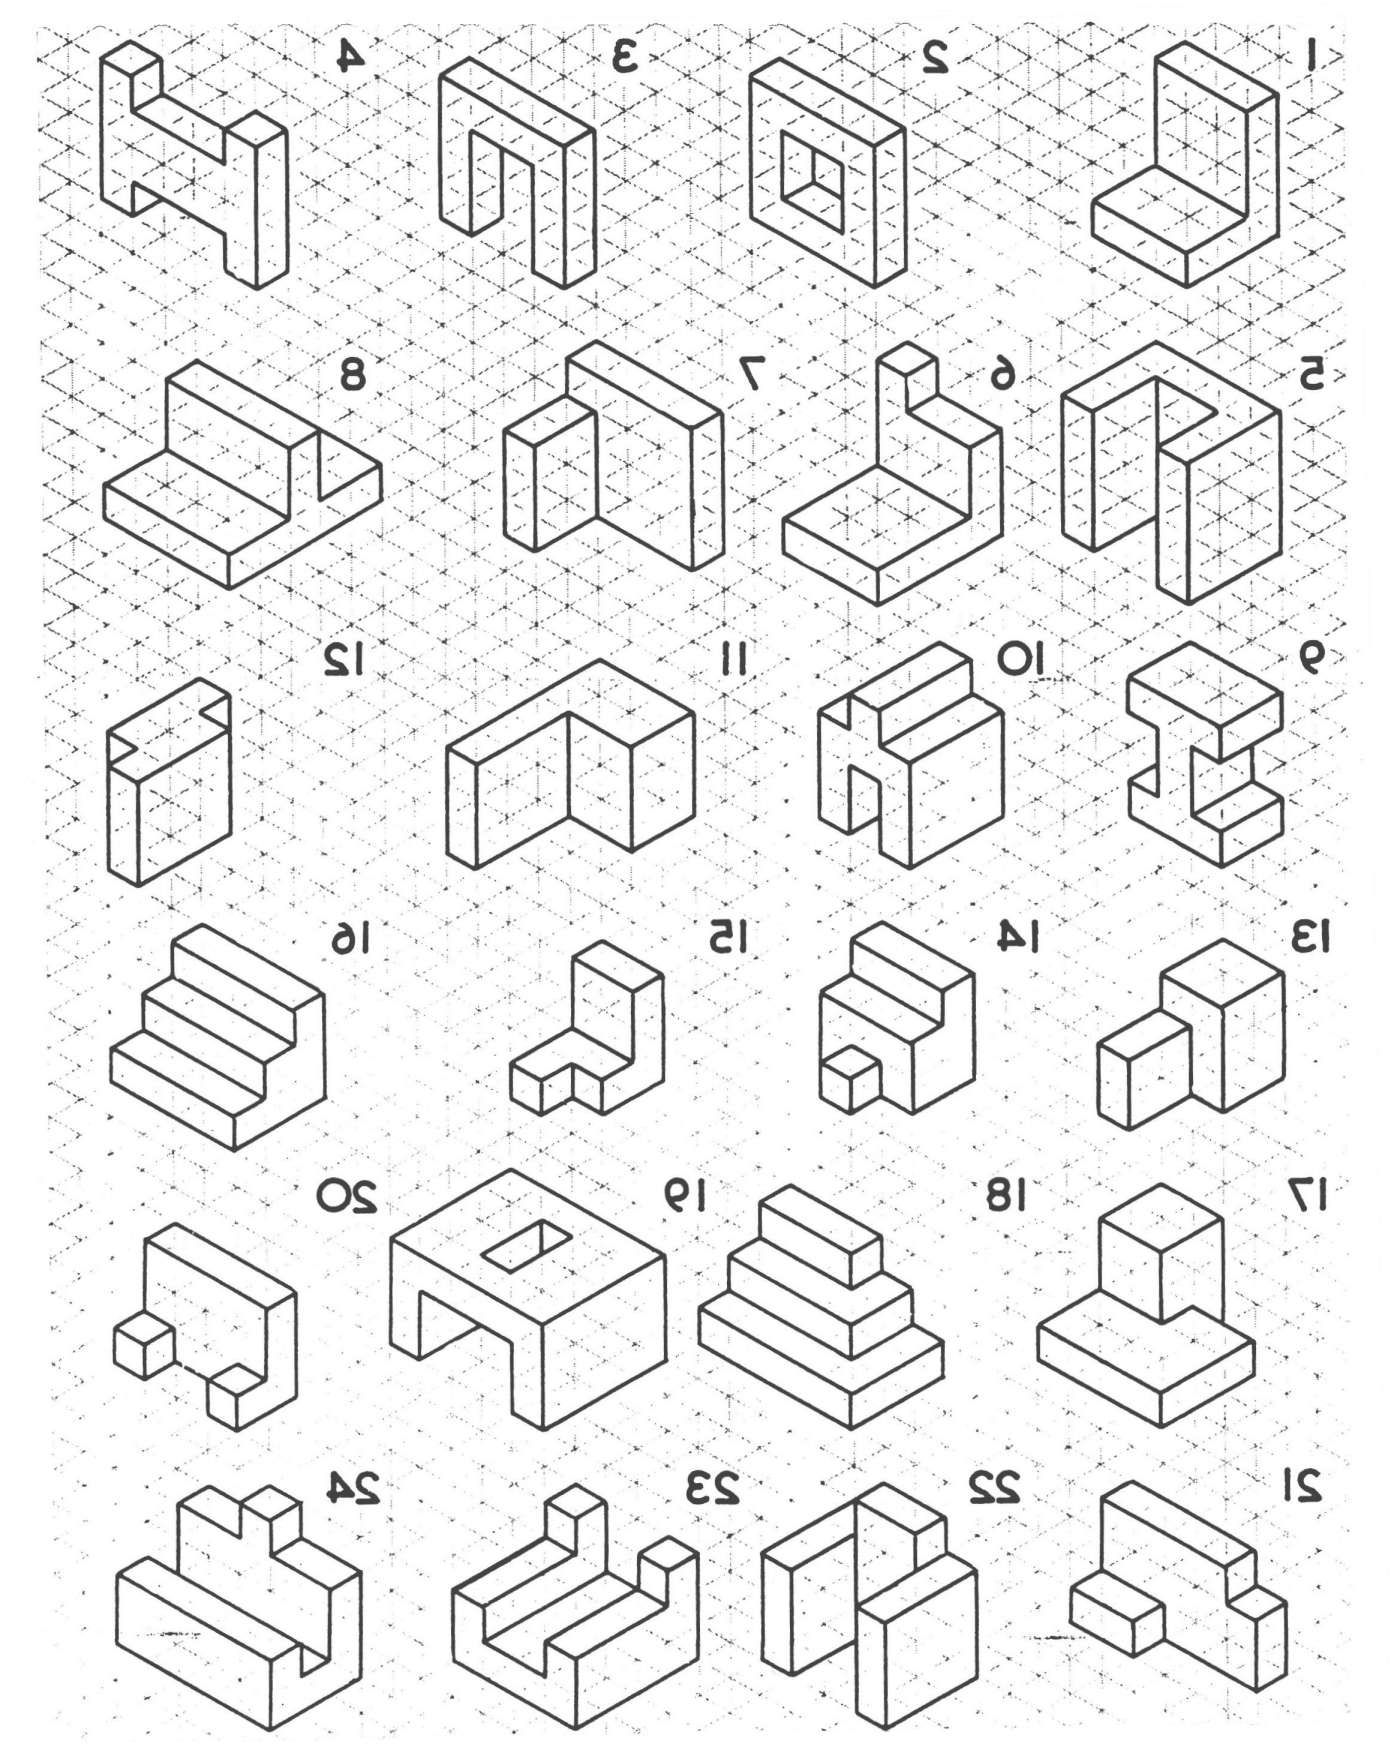 medium resolution of Isometric Drawings Worksheets   Printable Worksheets and Activities for  Teachers